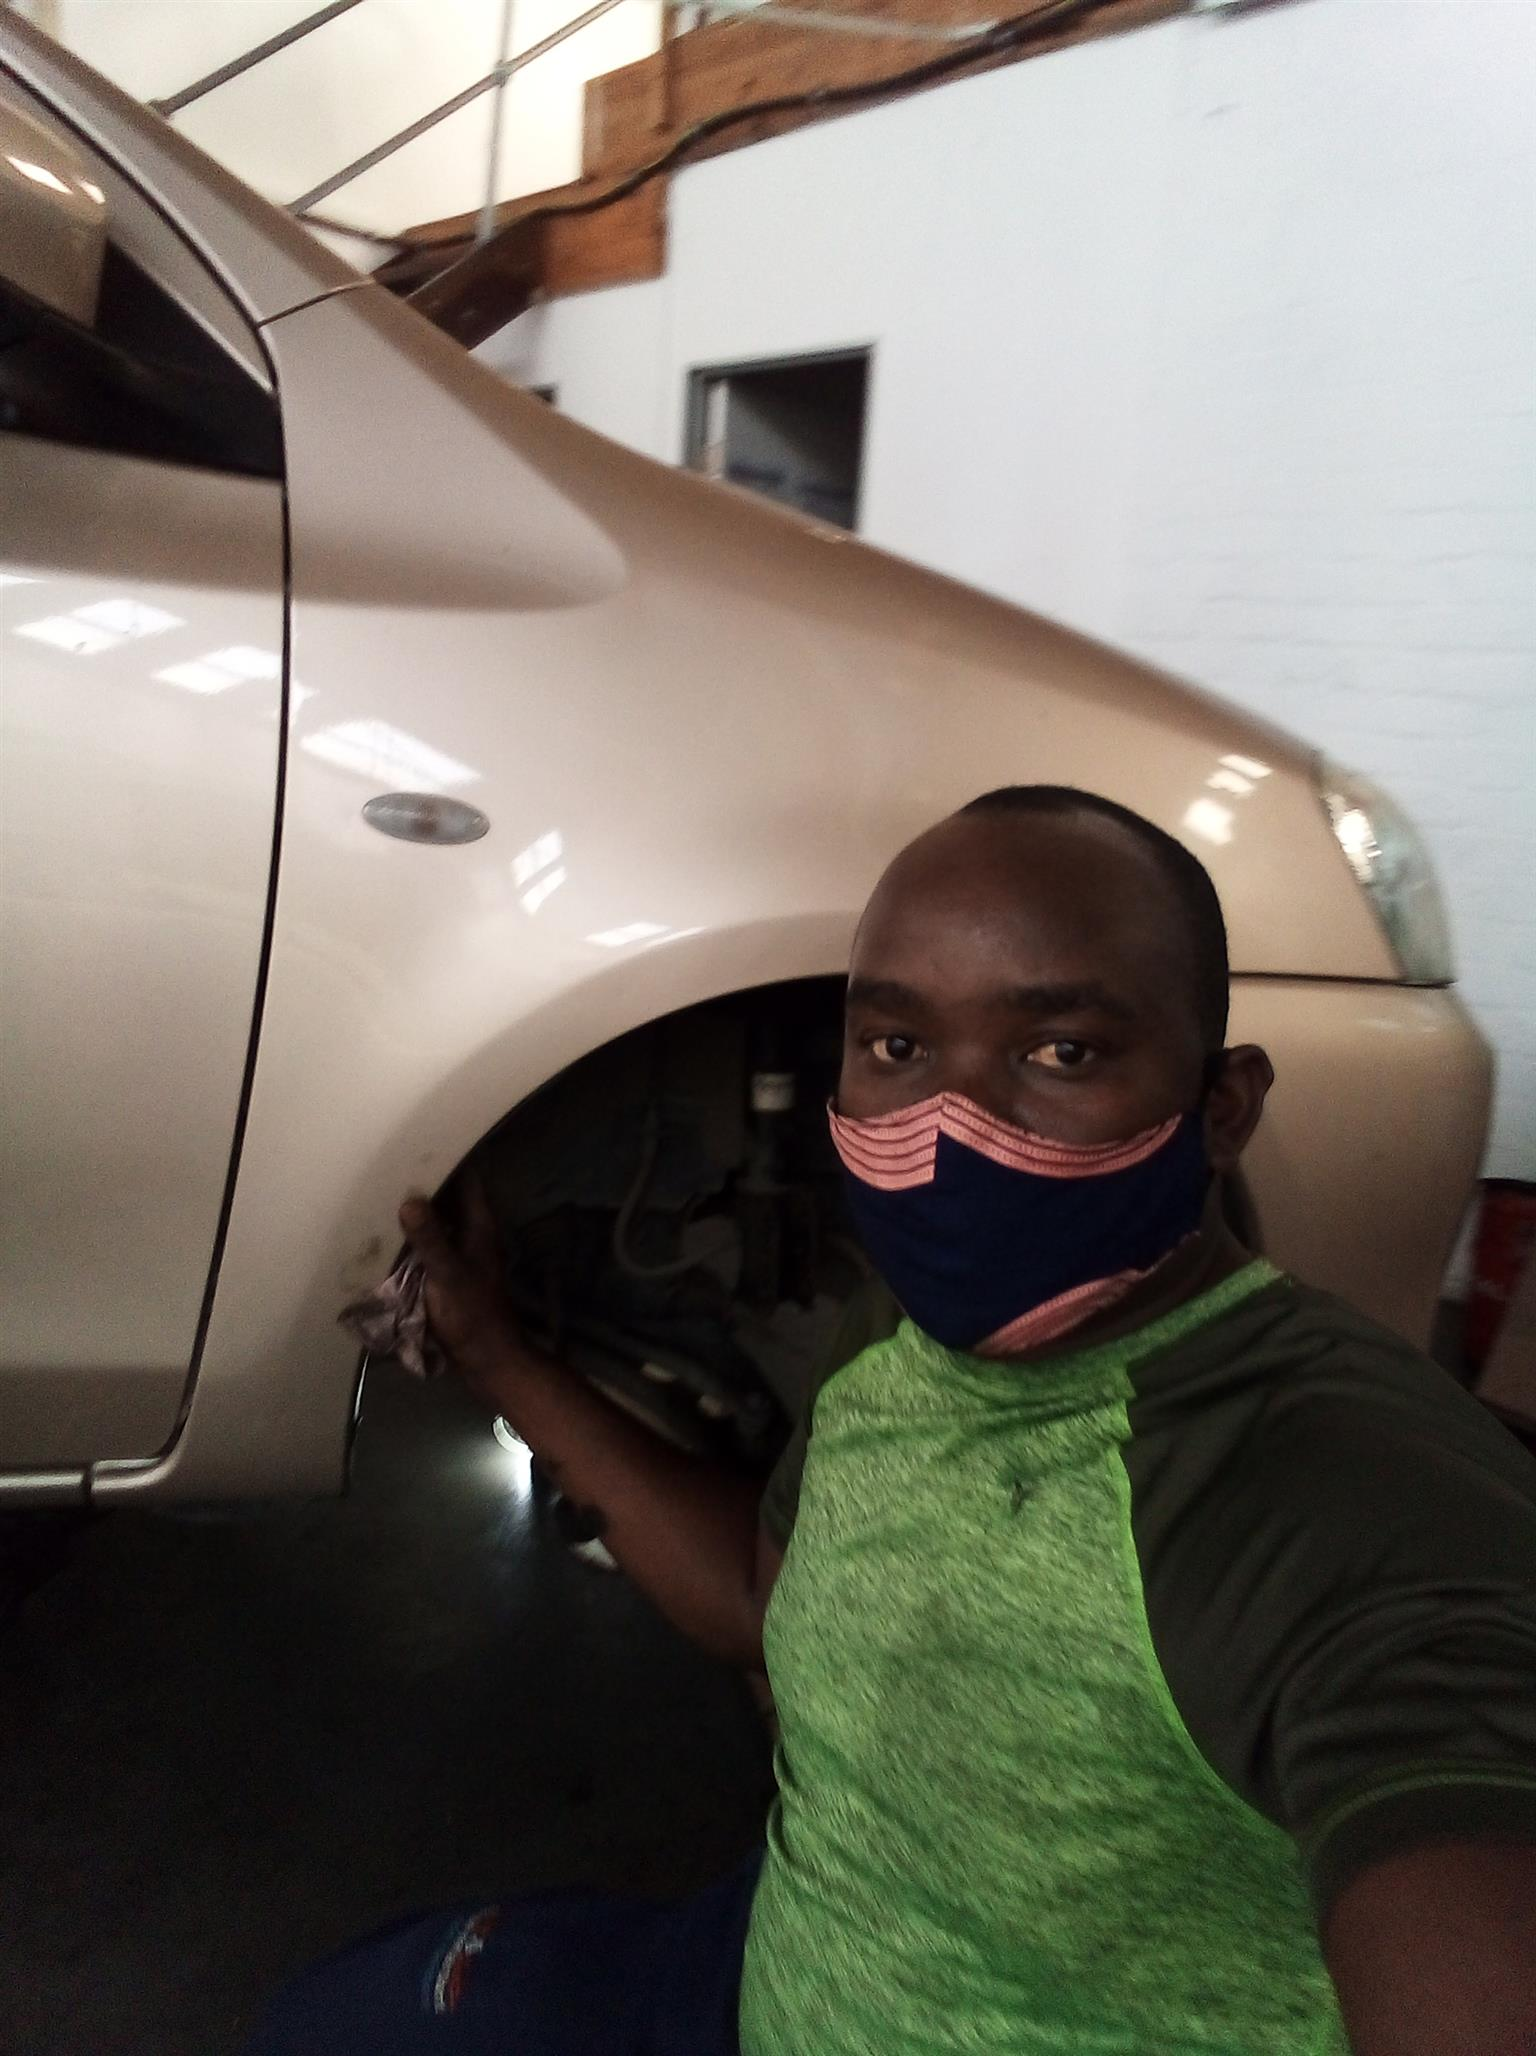 Qualified Auto Mechanic Available